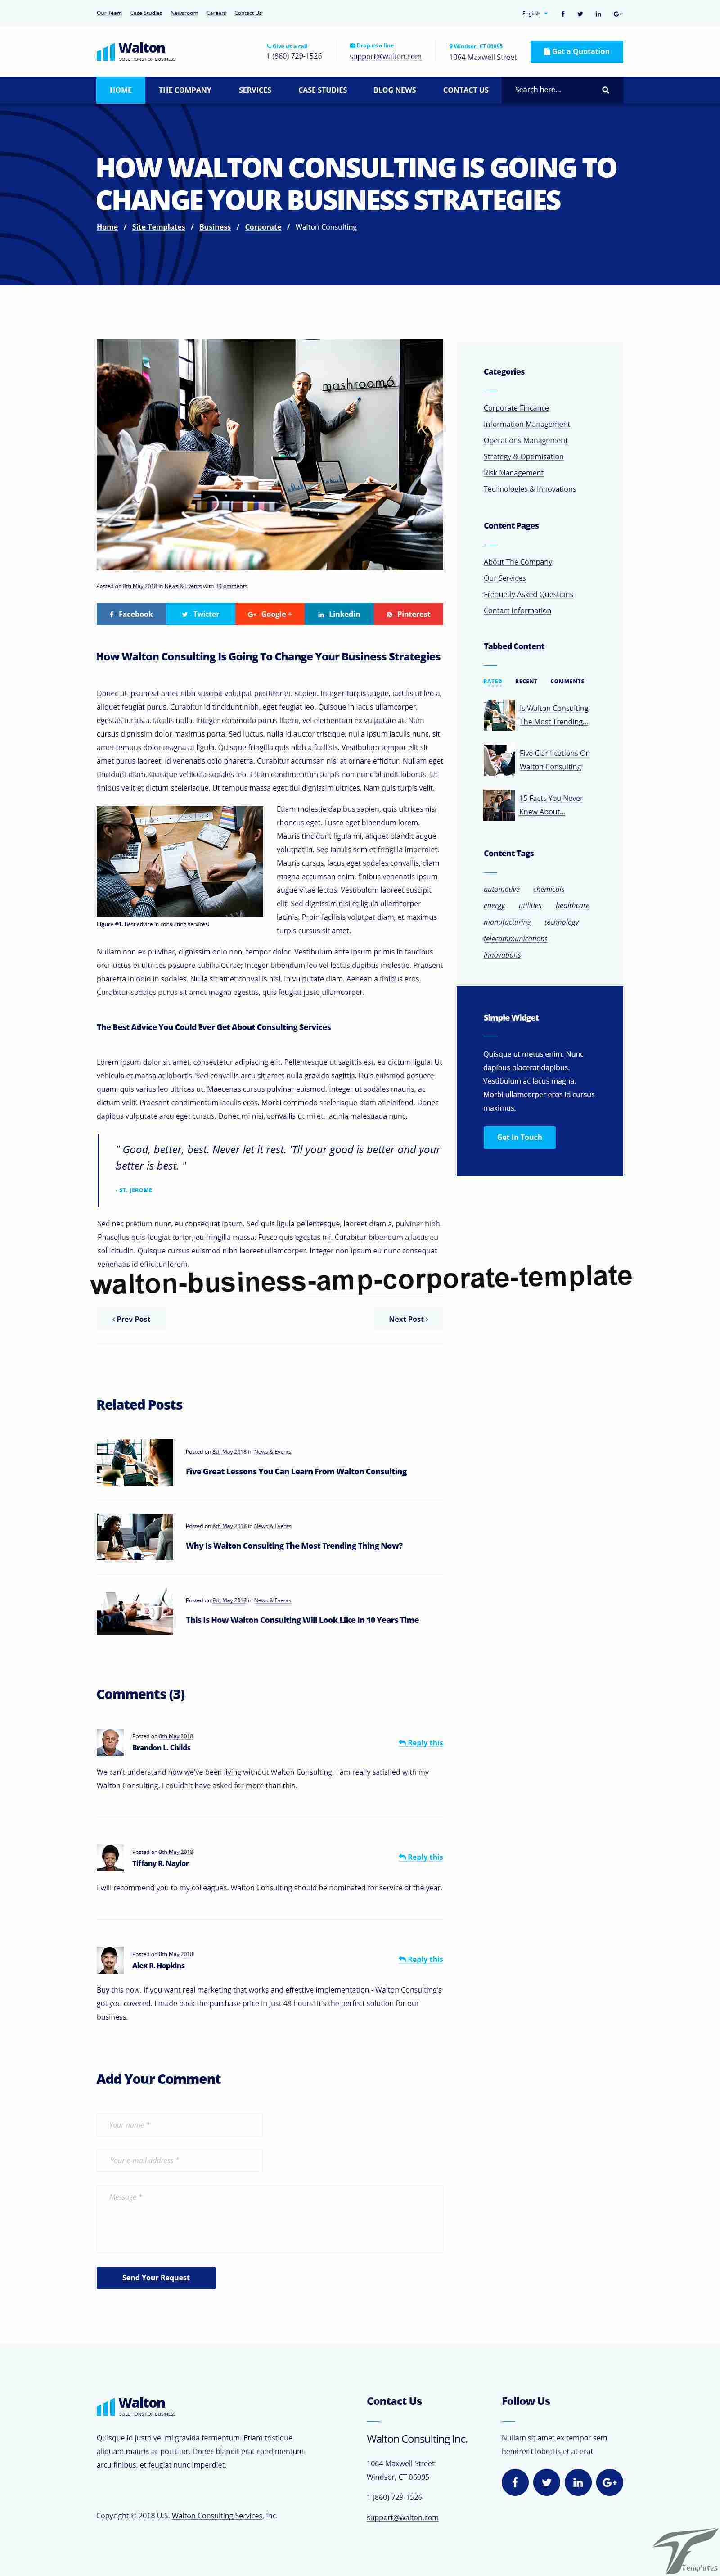 https://images.besthemes.com/images/h1_walton-business-amp-corporate-template18-_-248336682-sshot-18_walton_blog_article.jpg